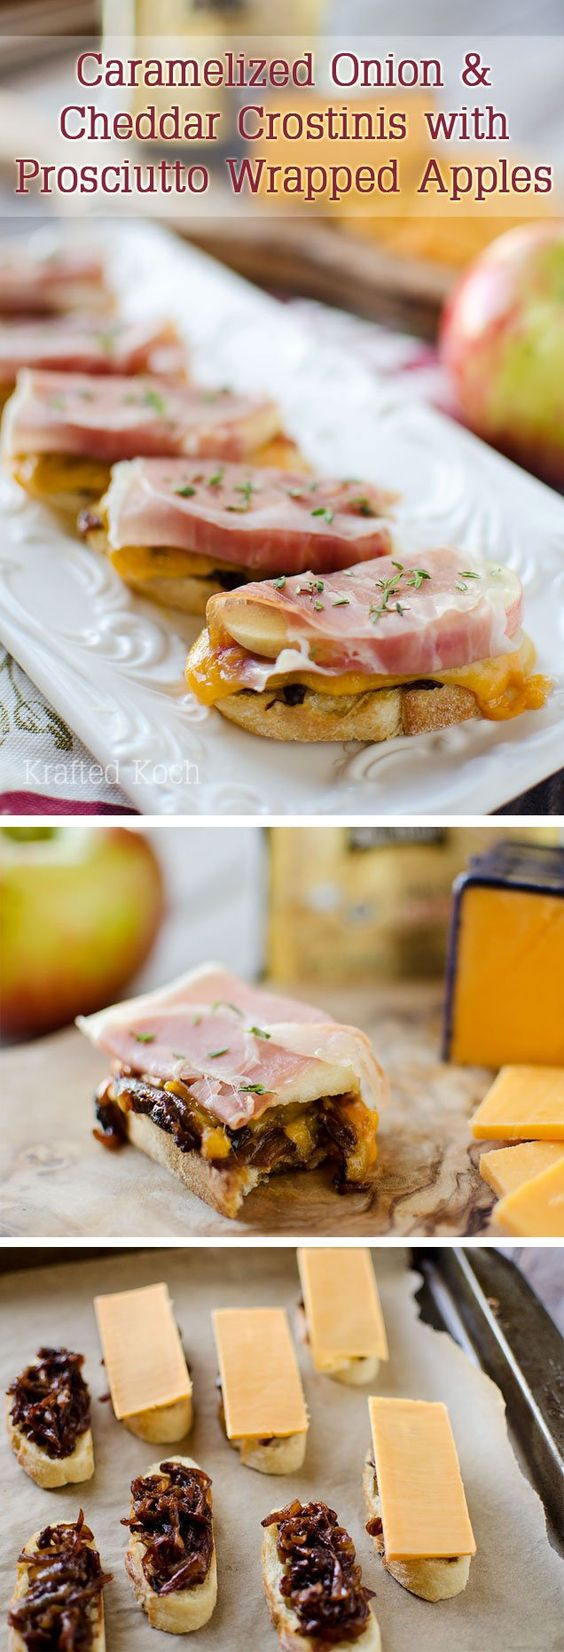 Caramelized Onion & Cheddar Crostinis with Prosciutto Wrapped Apples ...